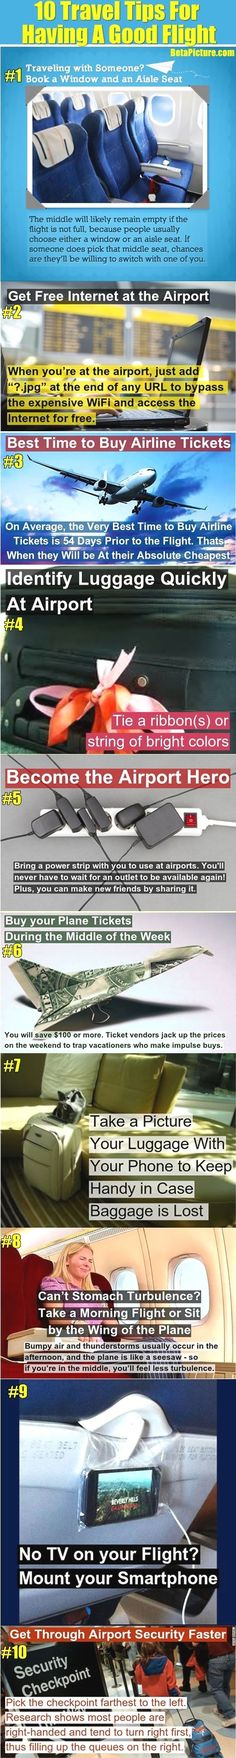 10 Travel Tips That You Must Know To Have A Good Flight. Loving that power strip idea! Such a good idea!  #traveltips